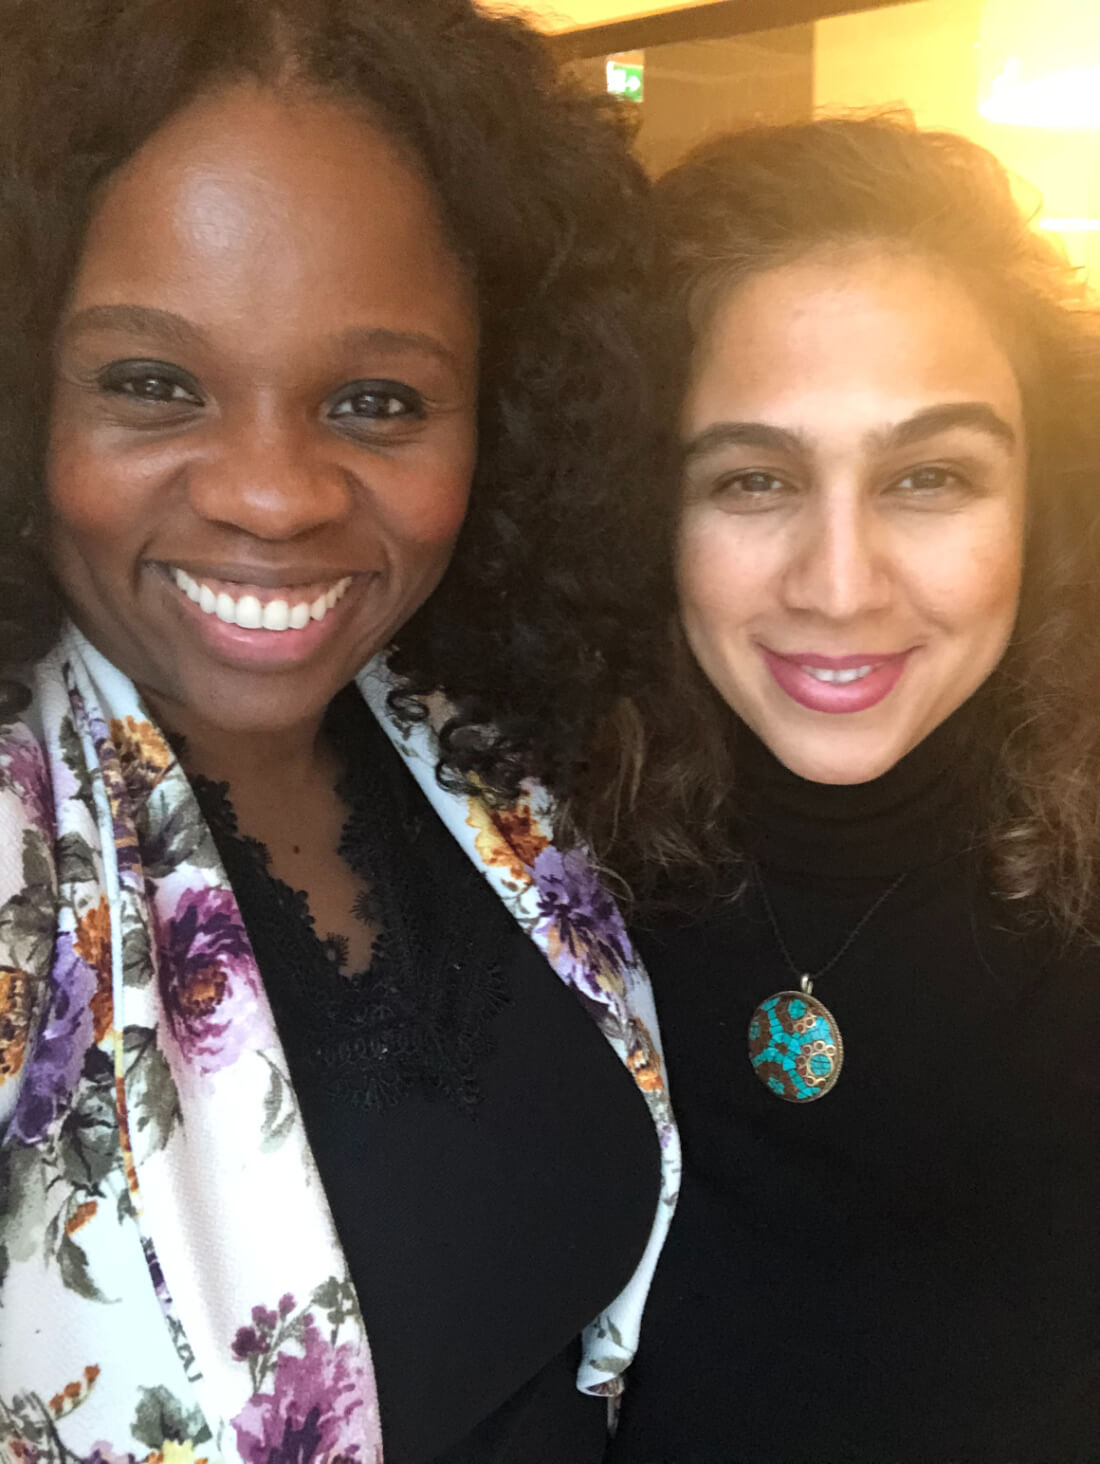 Local Purse virtual travel shopping founders, Lola Akinmade Åkerström and Sara Mansouri